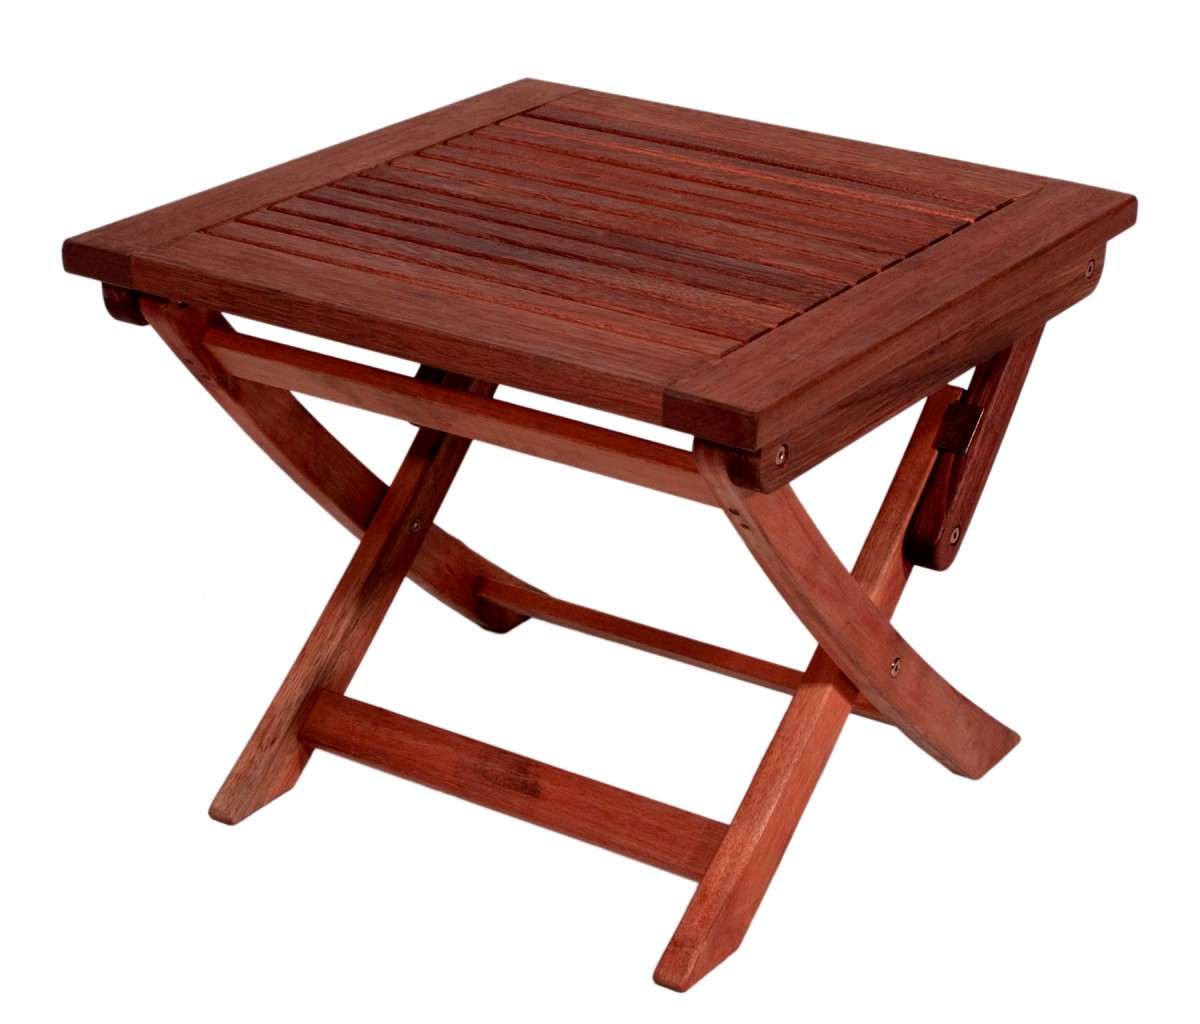 Table basse sumatra mobilier location - Petite table basse pliante ...